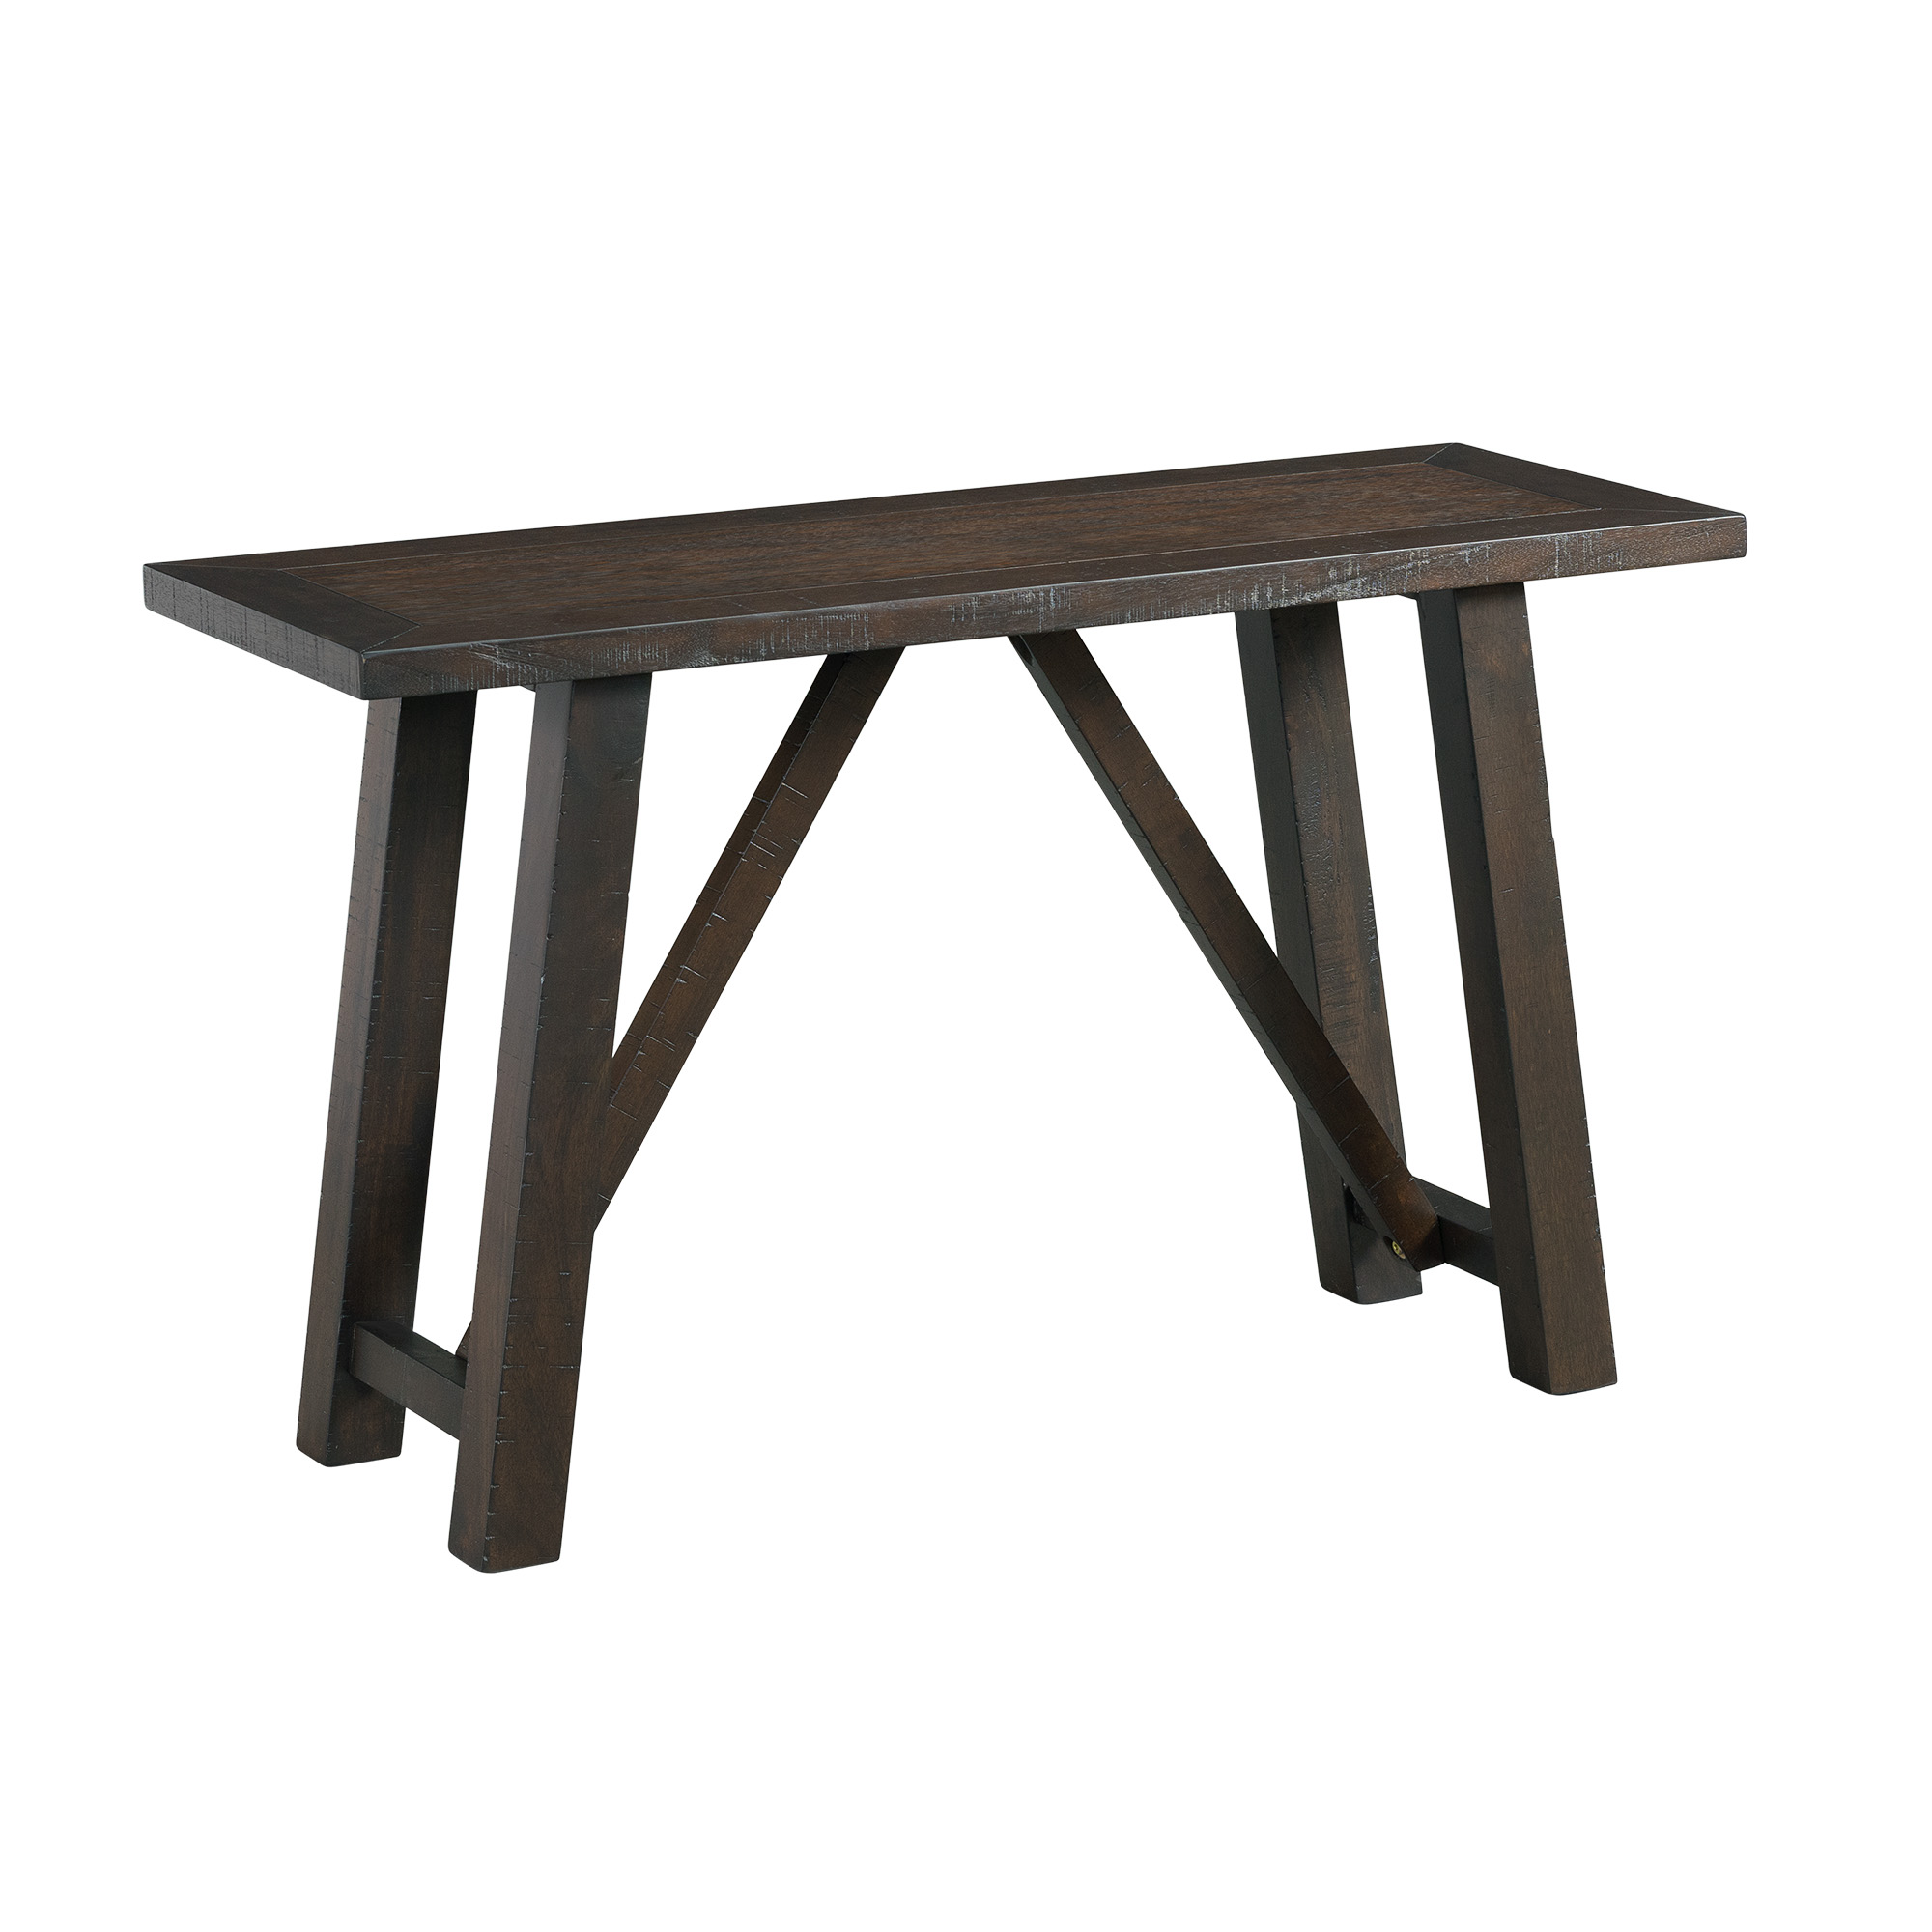 Picket House Furnishings Carter Counter Height Bench